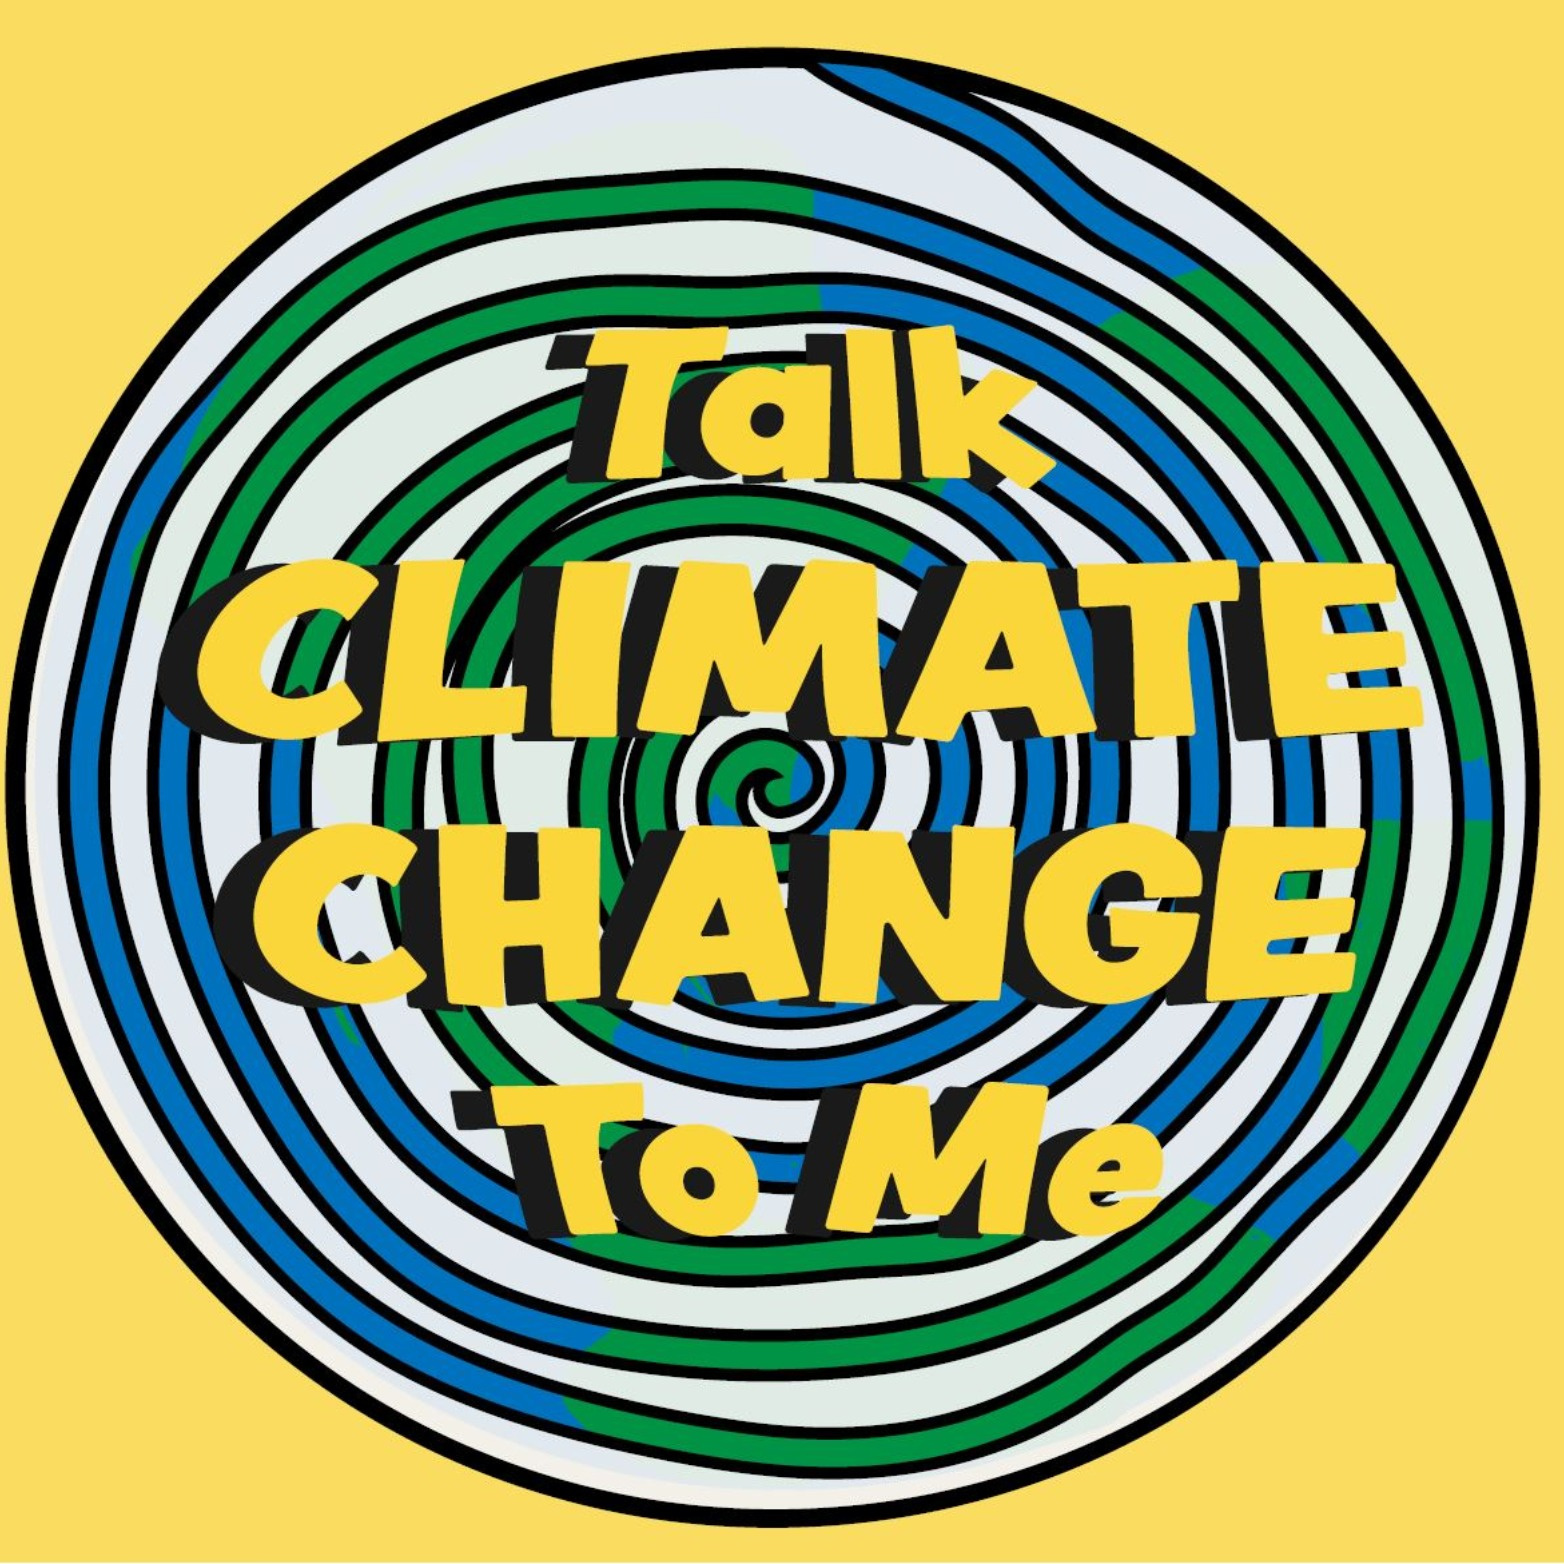 Talk Climate Change to Me - The Anthropocene